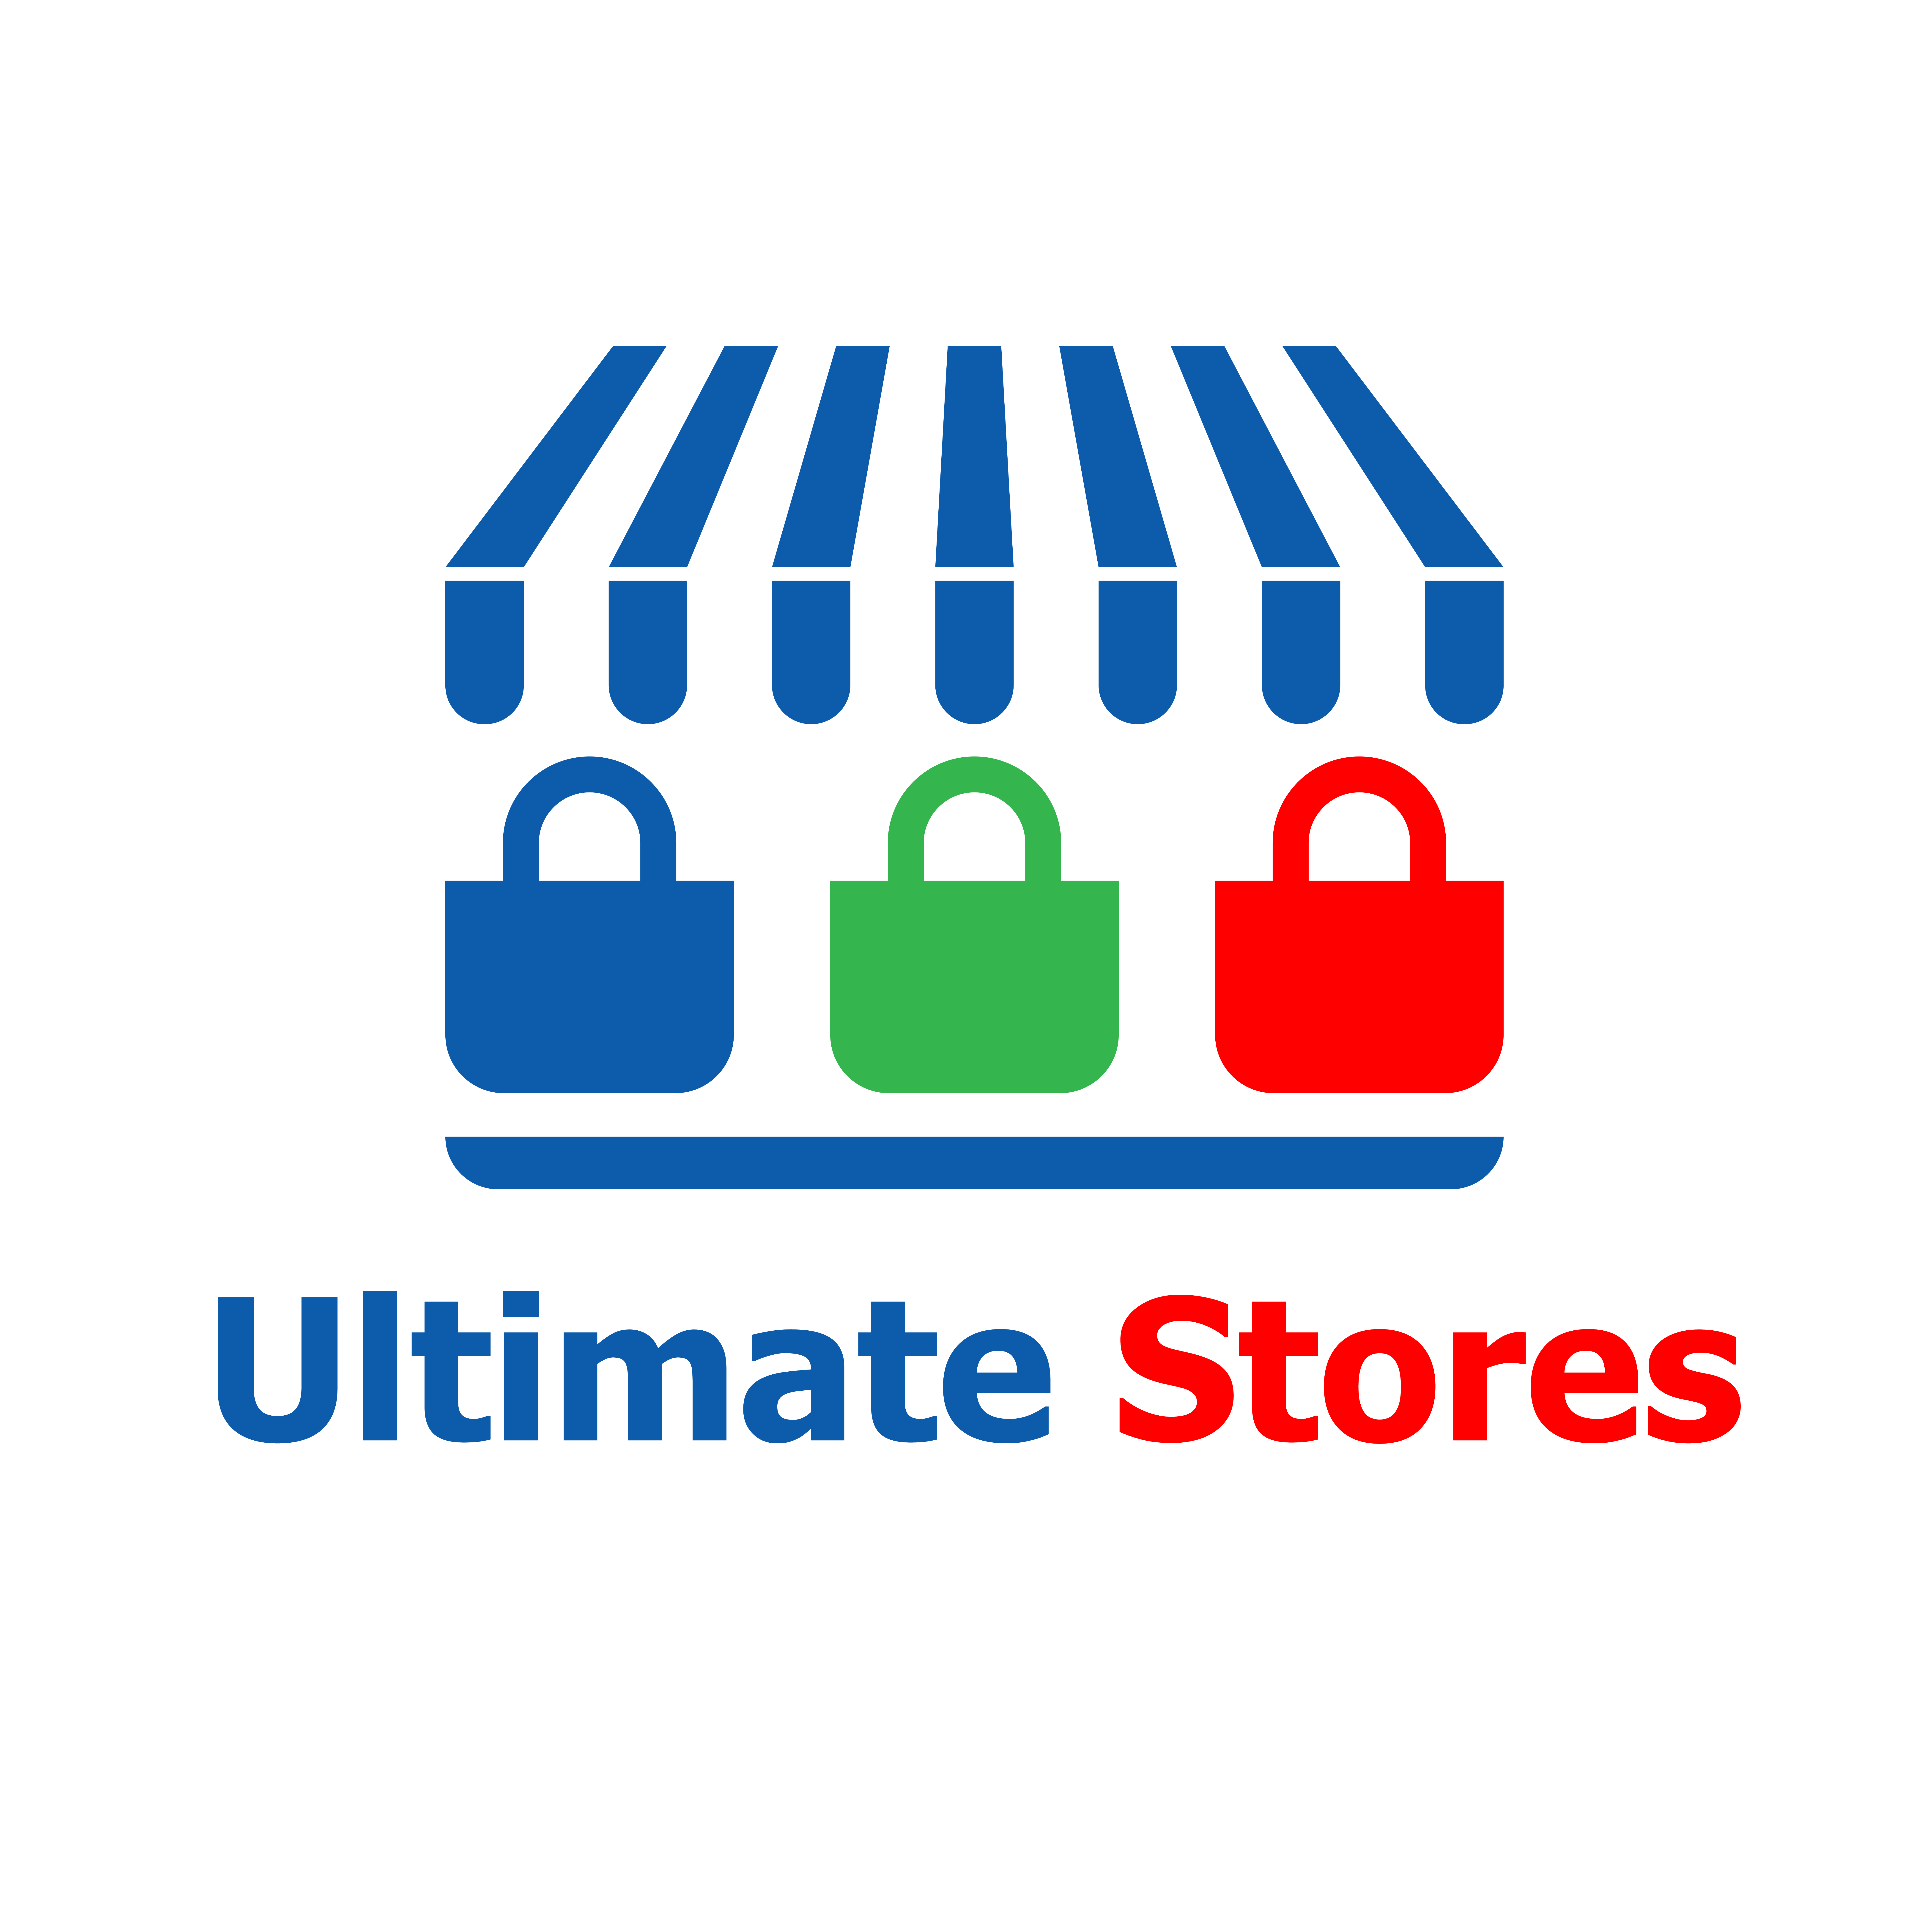 Ultimate Stores